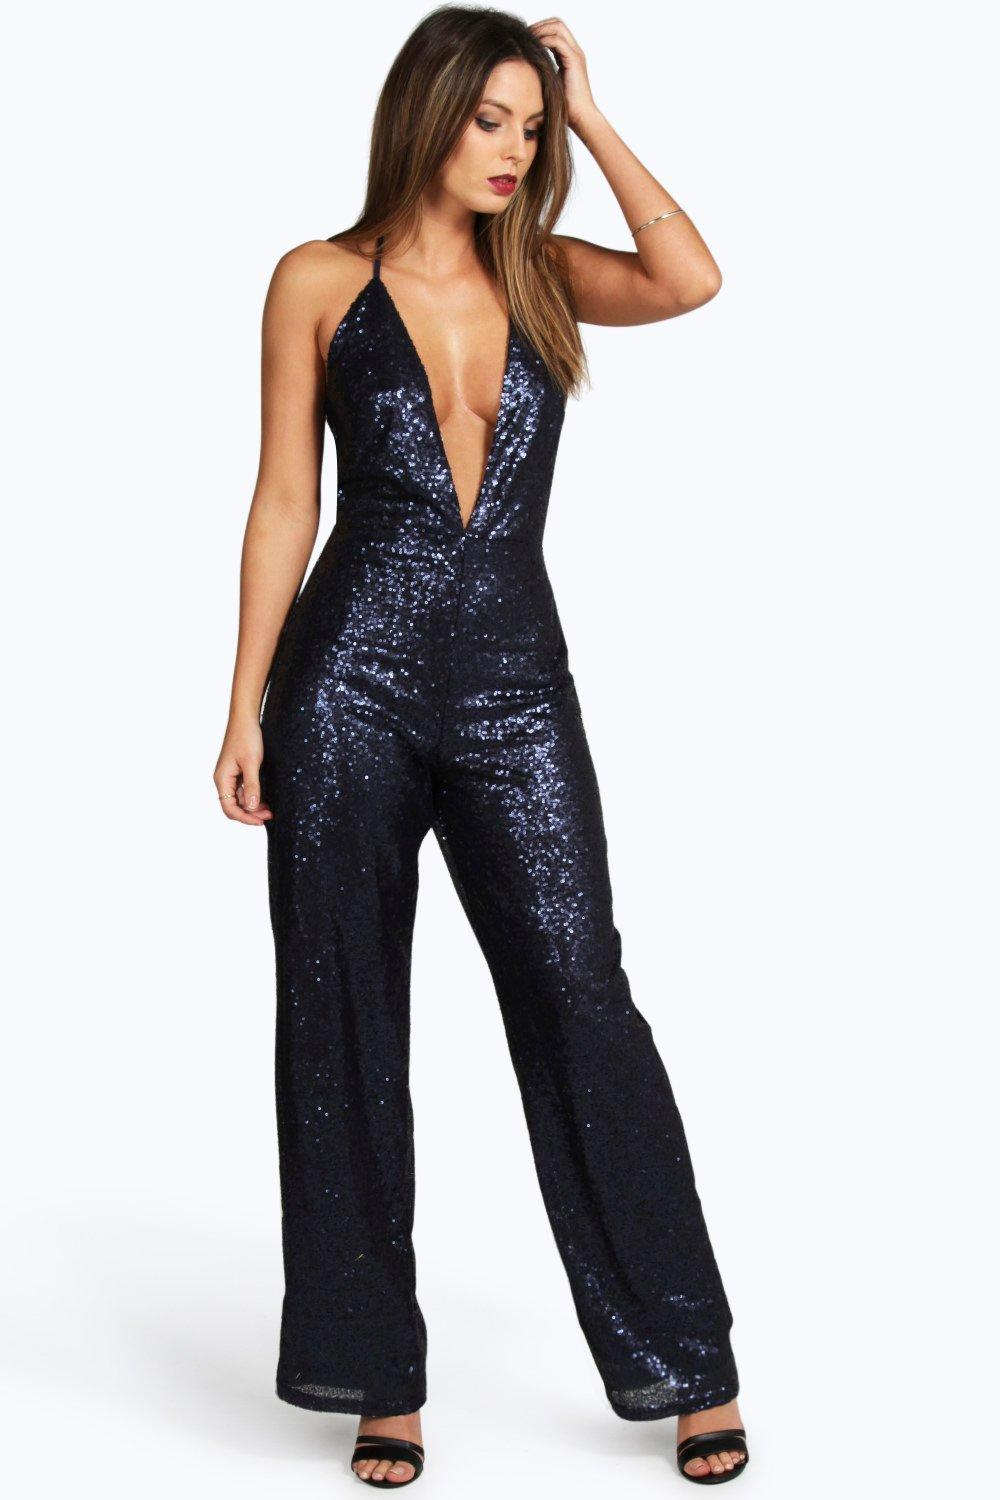 Boohoo Womens Boutique Lisa Deep Plunge Strappy Sequin Jumpsuit | EBay